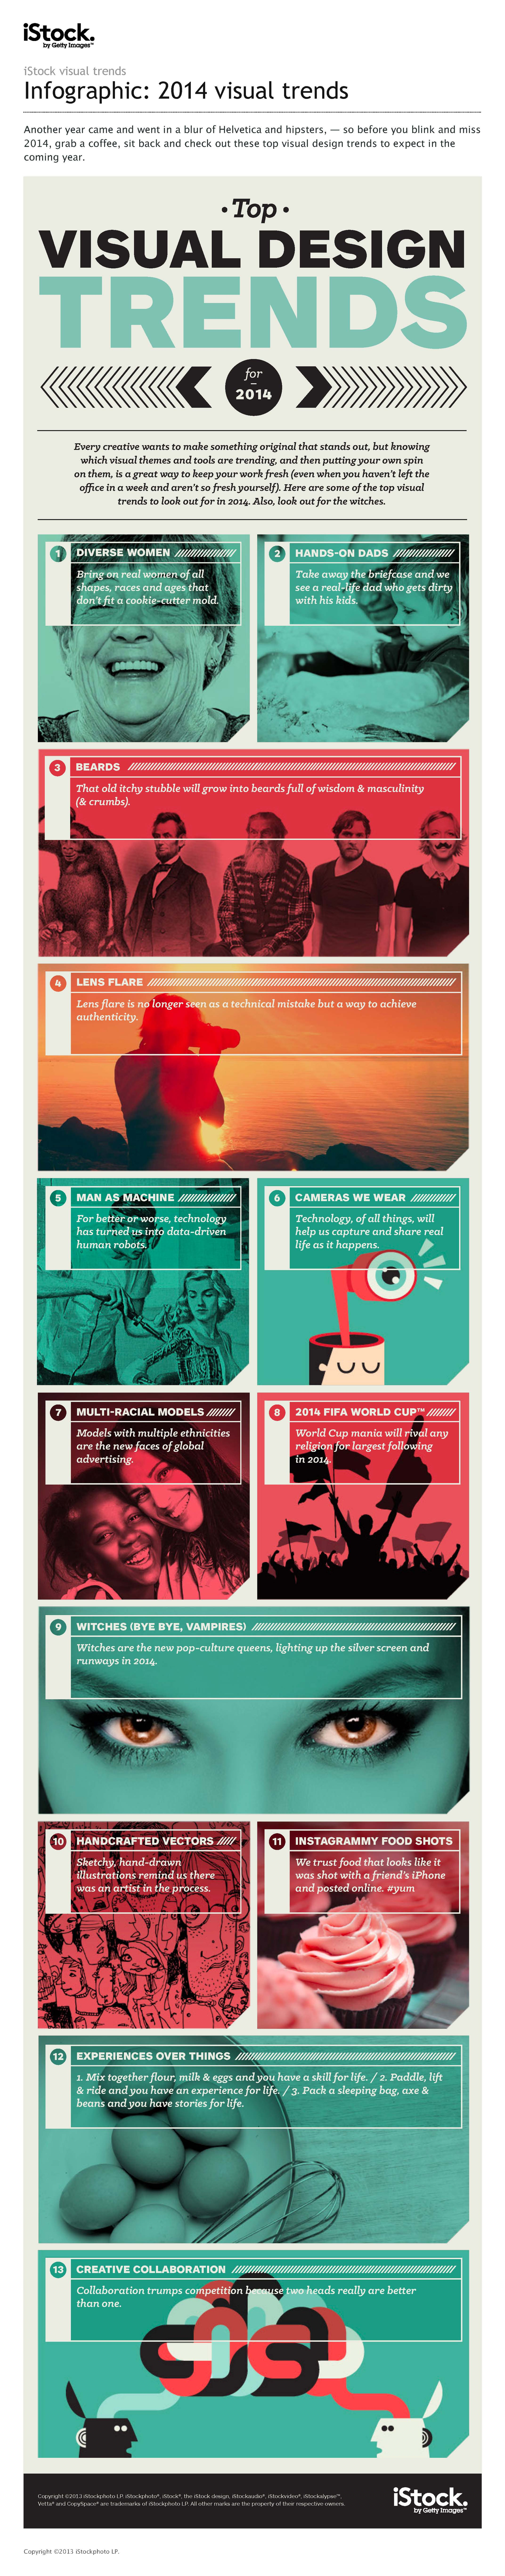 Infographic: 2014 visual trends  http://www.istockphoto.com/article_view.php?ID=1619&esource=61157_iStock_Designer_Predictions_EN_em&sp_rid=&sp_mid=5924714#.UqkAB_YmxXB